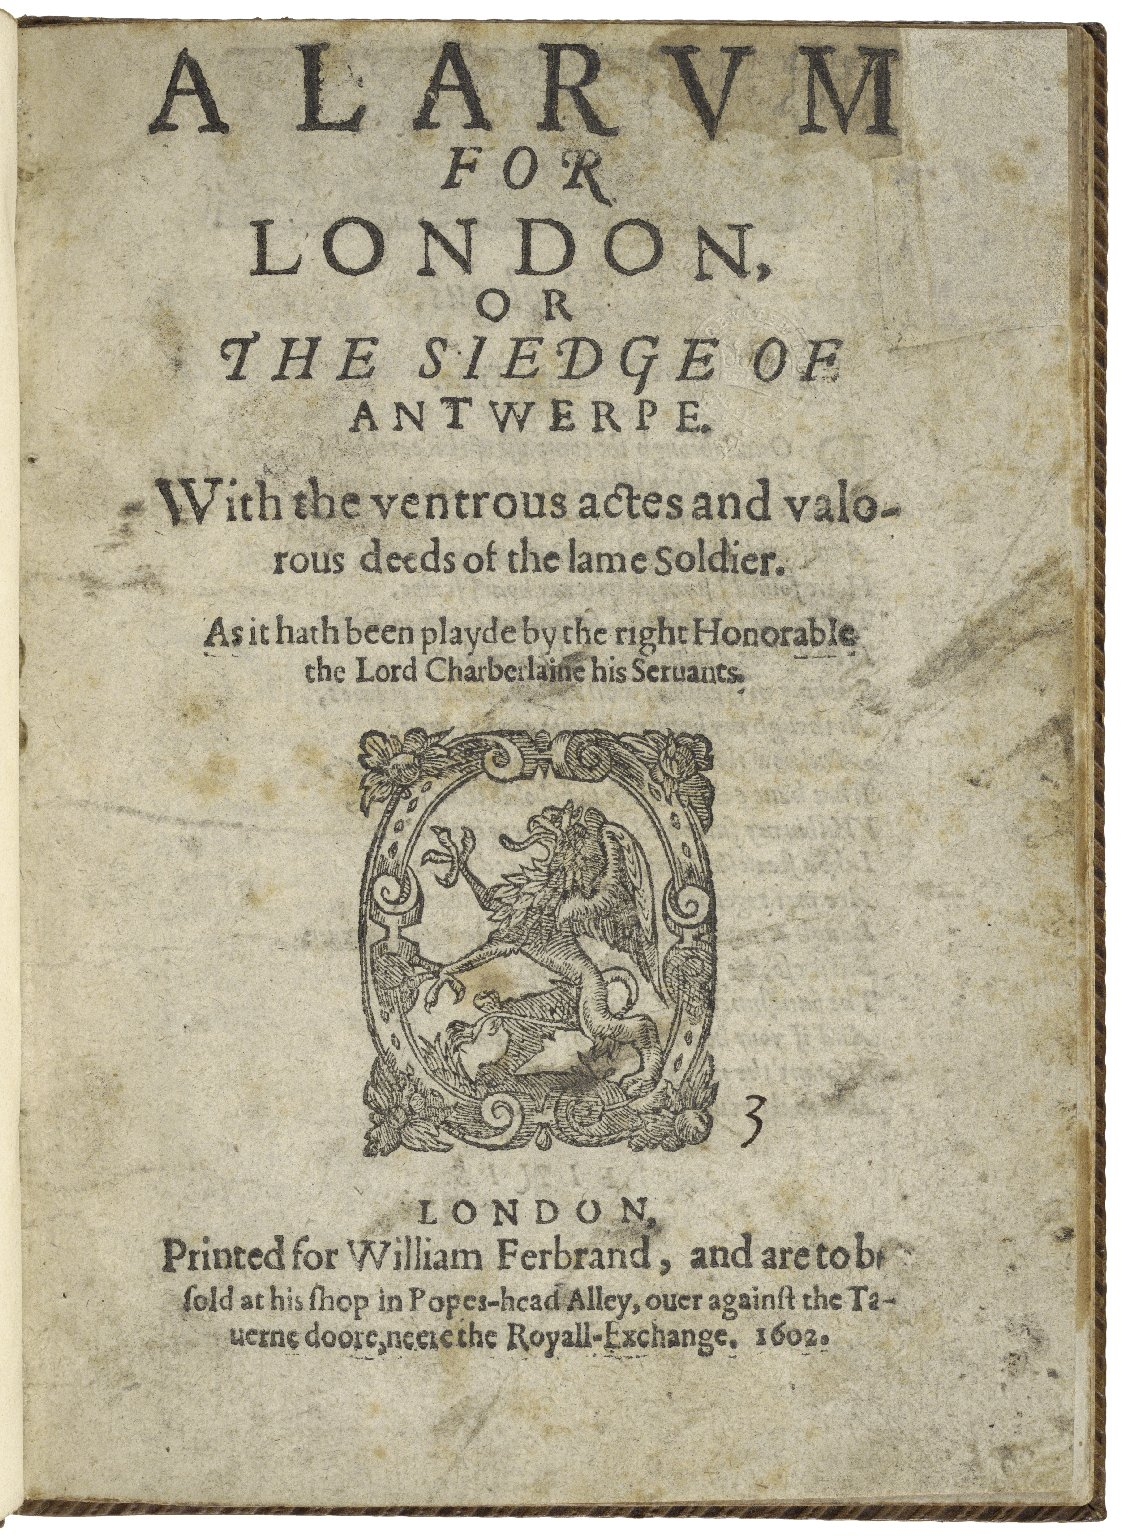 A larum for London, or The siedge of Antwerpe. VVith the ventrous actes and valorous deeds of the lame soldier. As it hath been playde by the right Honorable the Lord Charberlaine [sic] his Seruants.